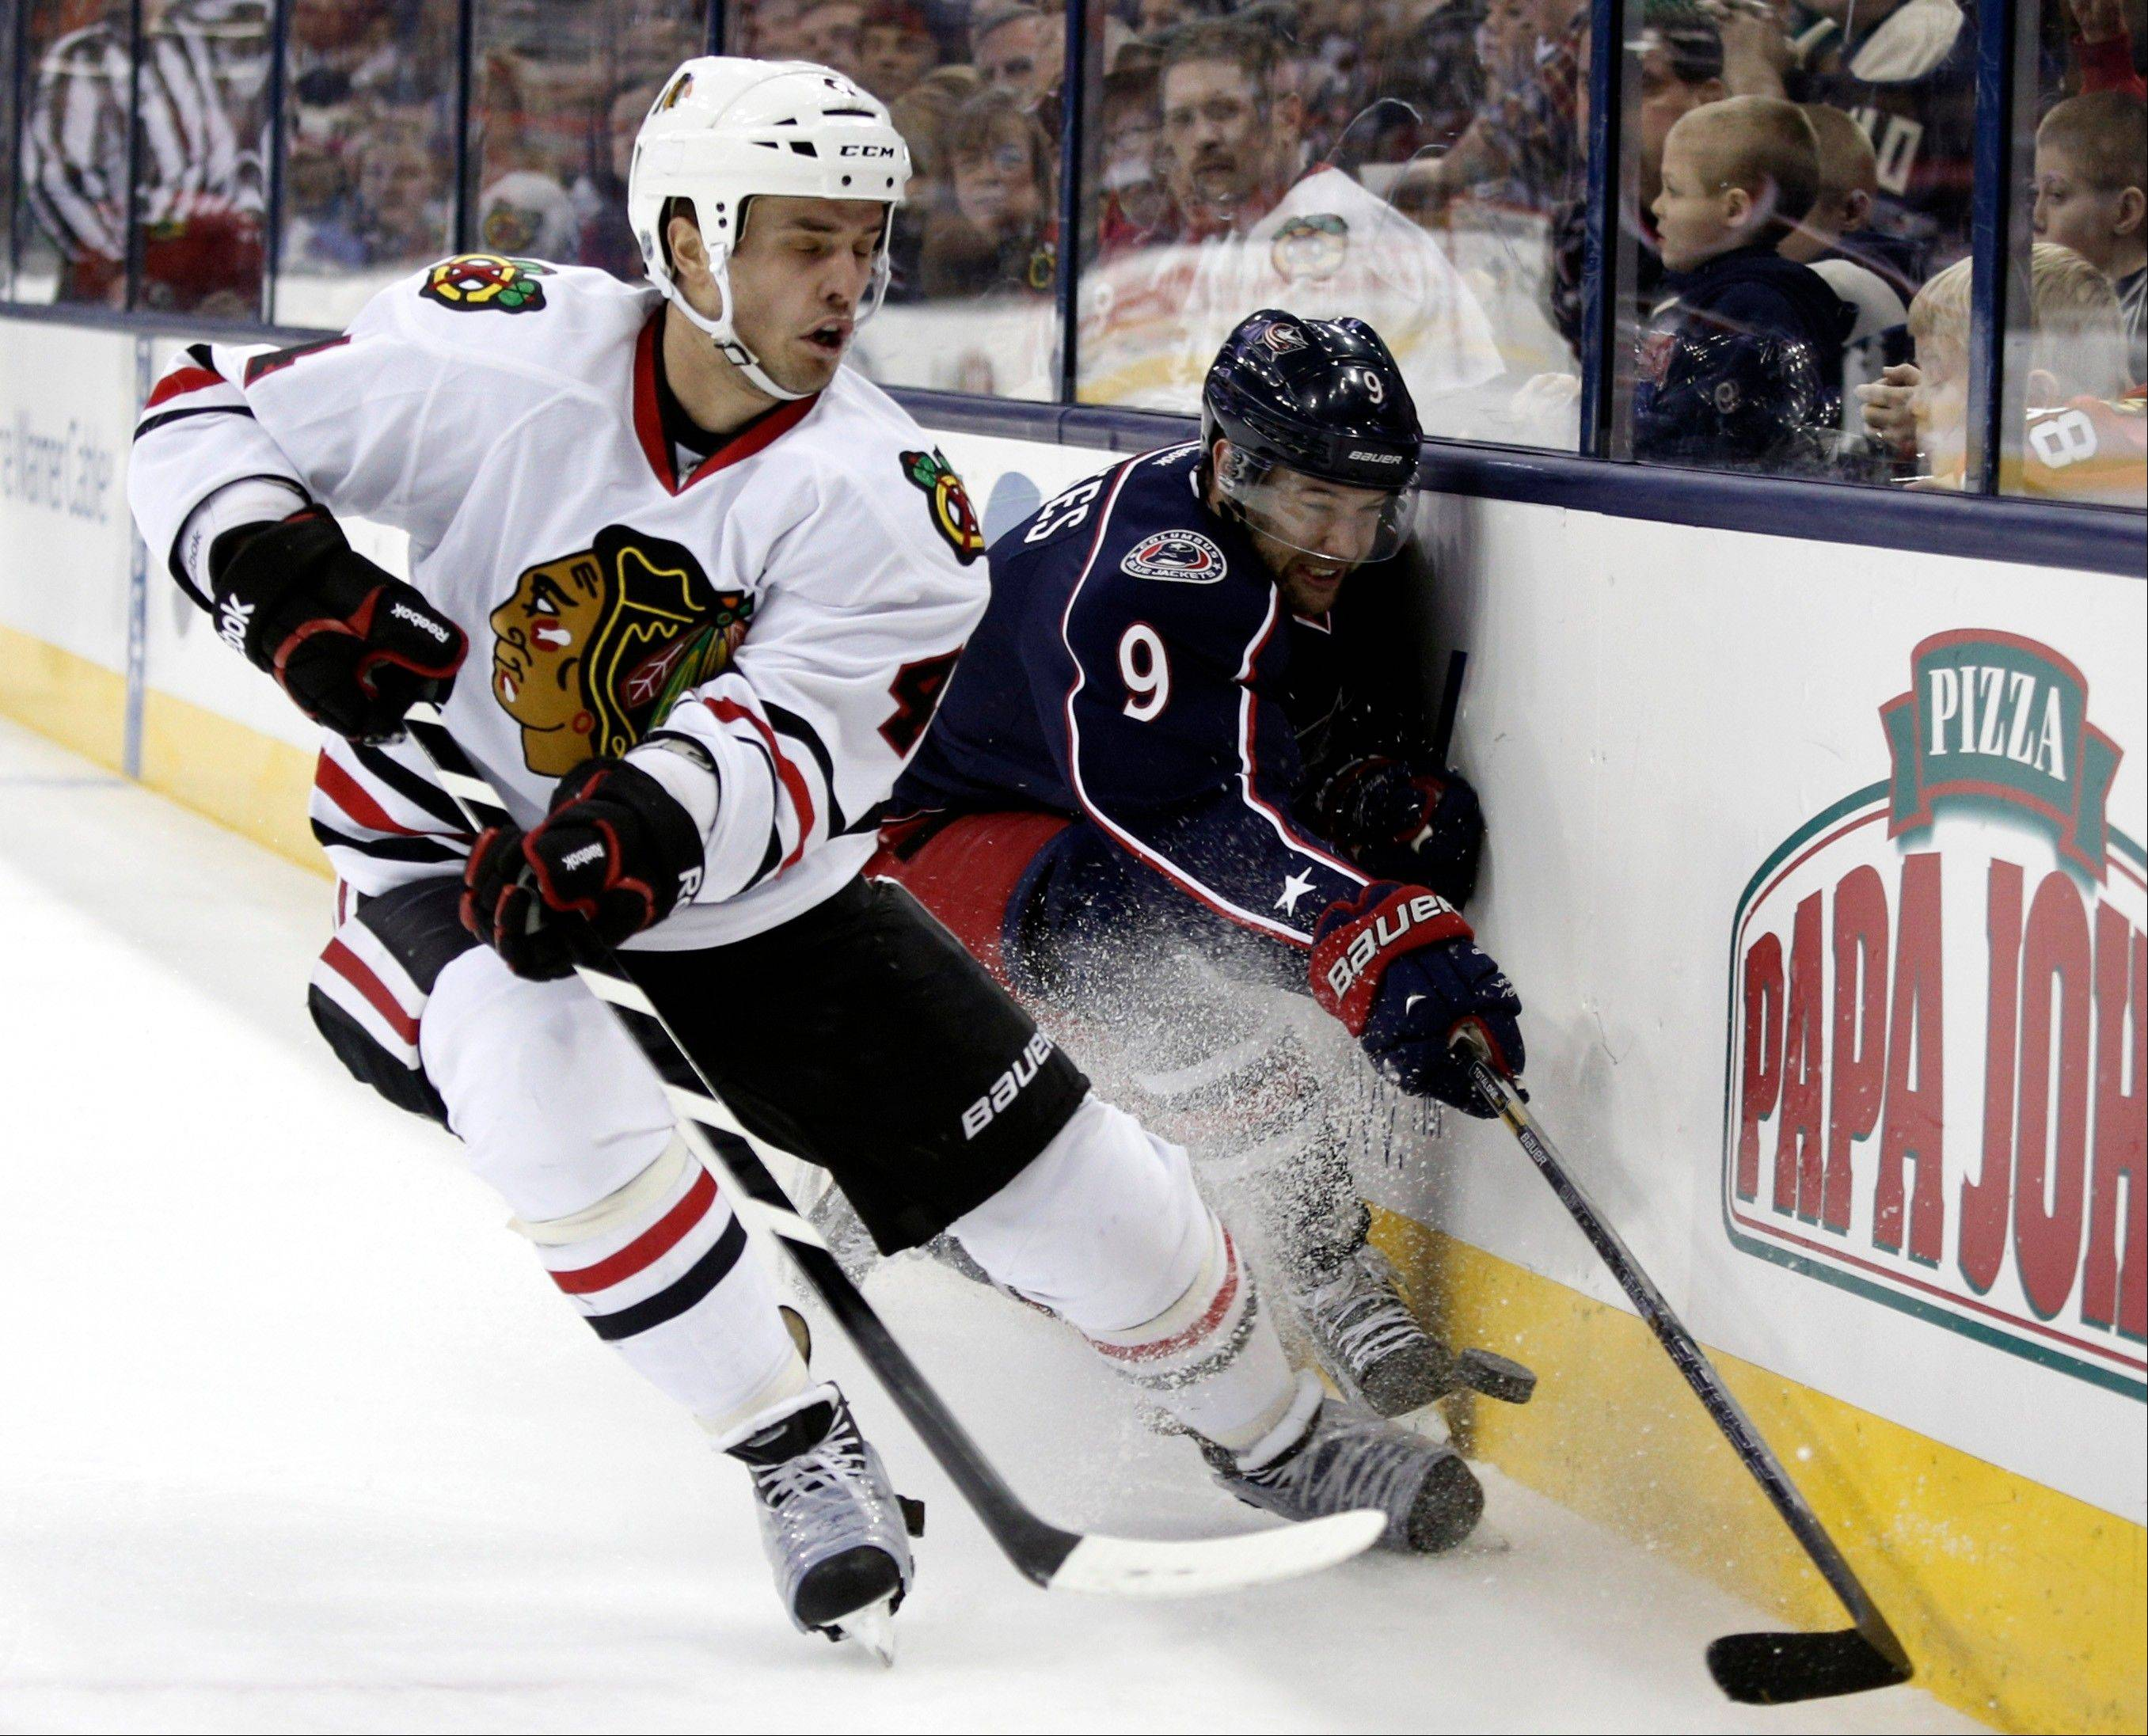 Chicago Blackhawks' Niklas Hjalmarsson, left, of Sweden works for the puck against Columbus Blue Jackets' Colton Gillies during the second period.